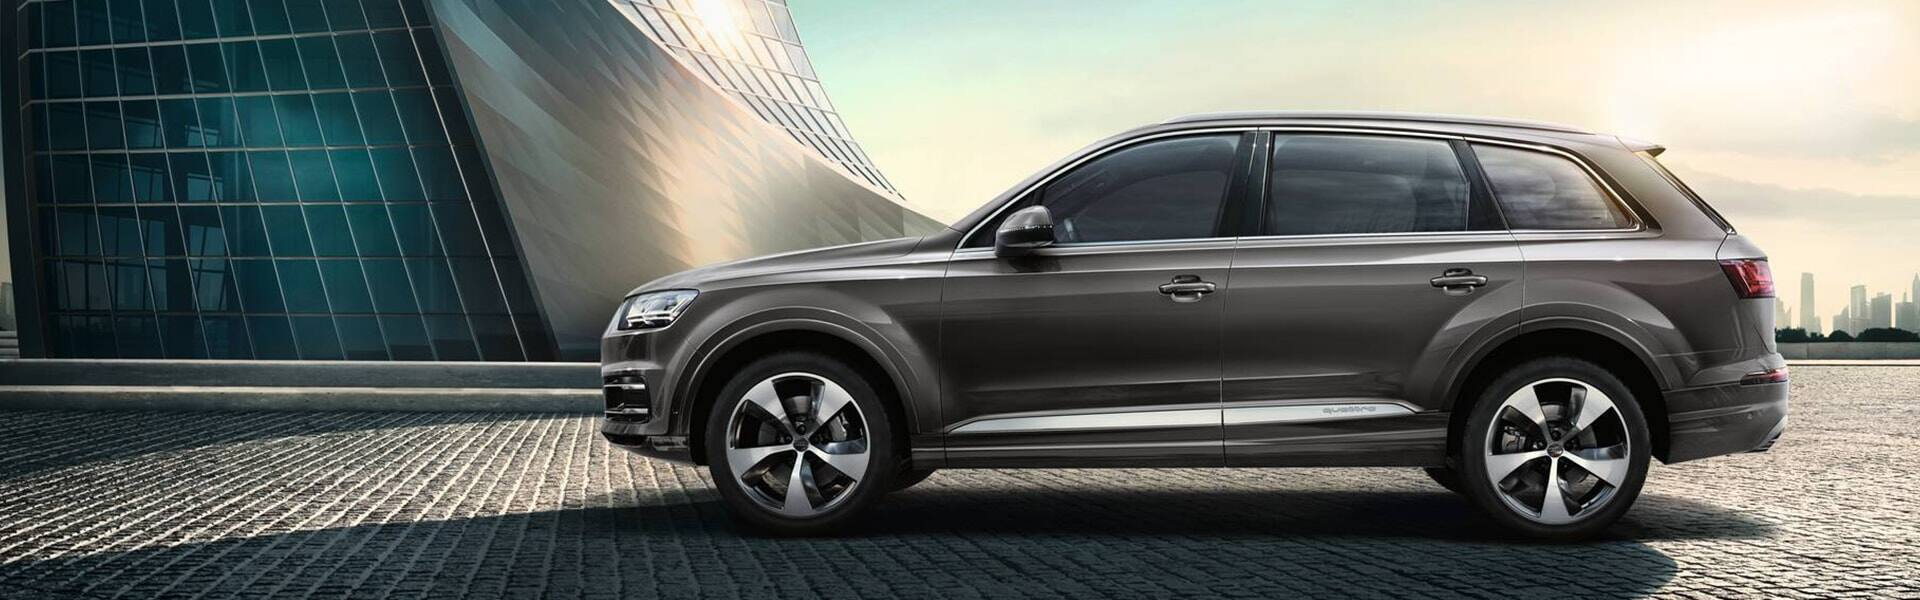 hight resolution of the 2019 audi q7